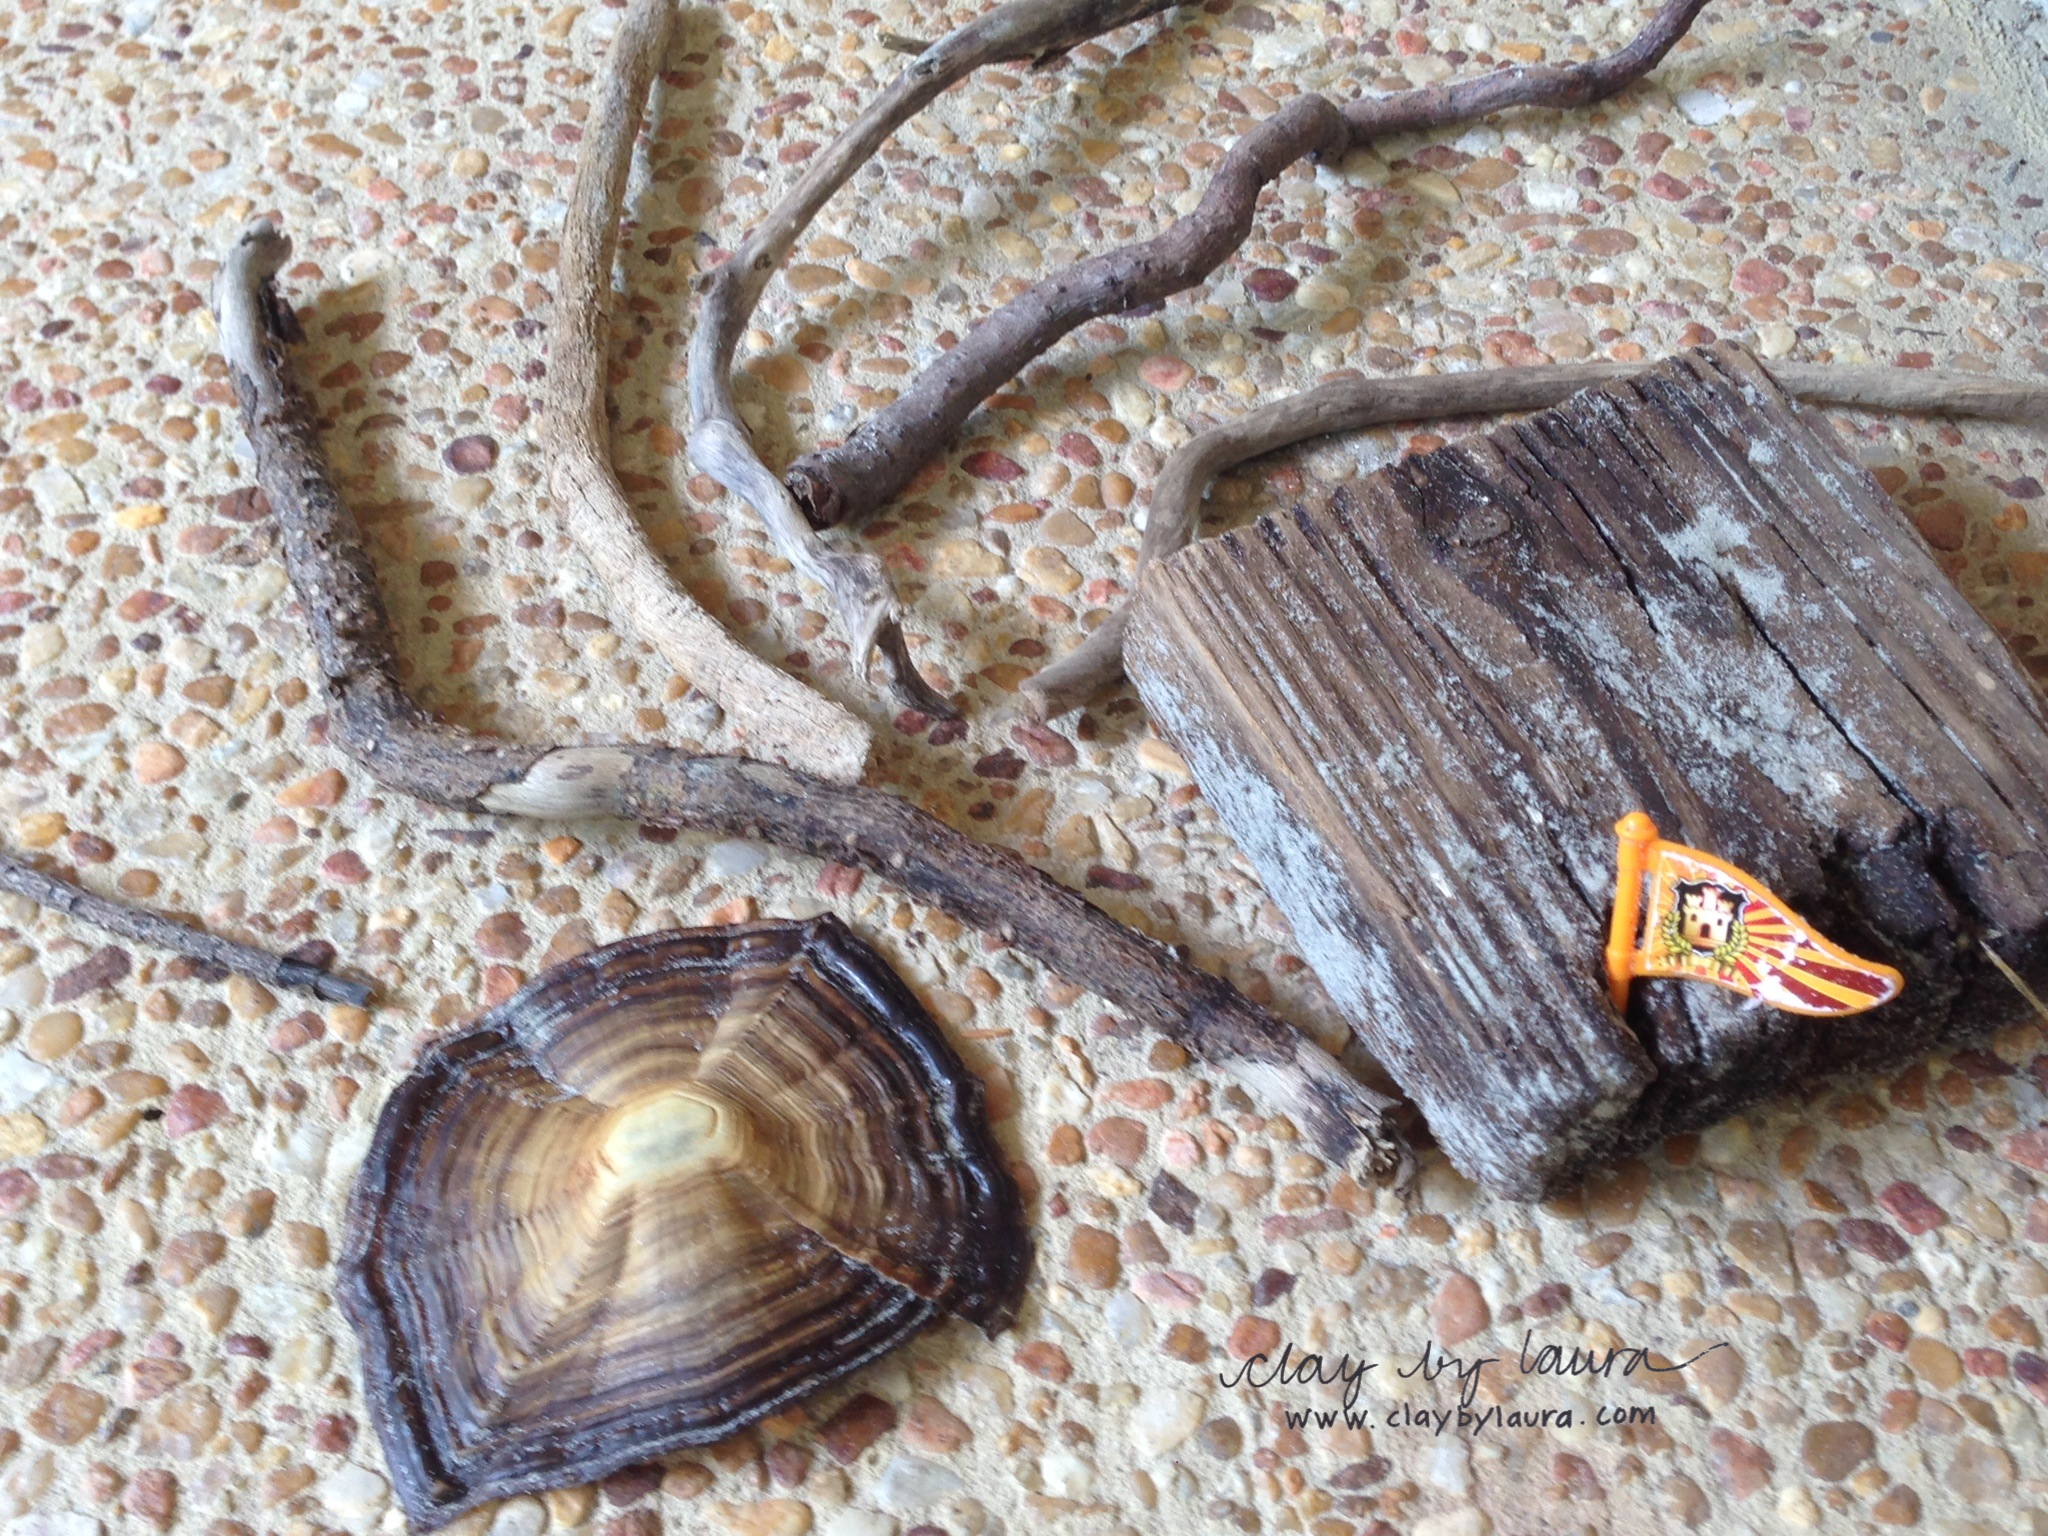 The beach holds many treasures. Here are some items I collected while taking a walk. I will use the driftwood as handles or bases for my work.